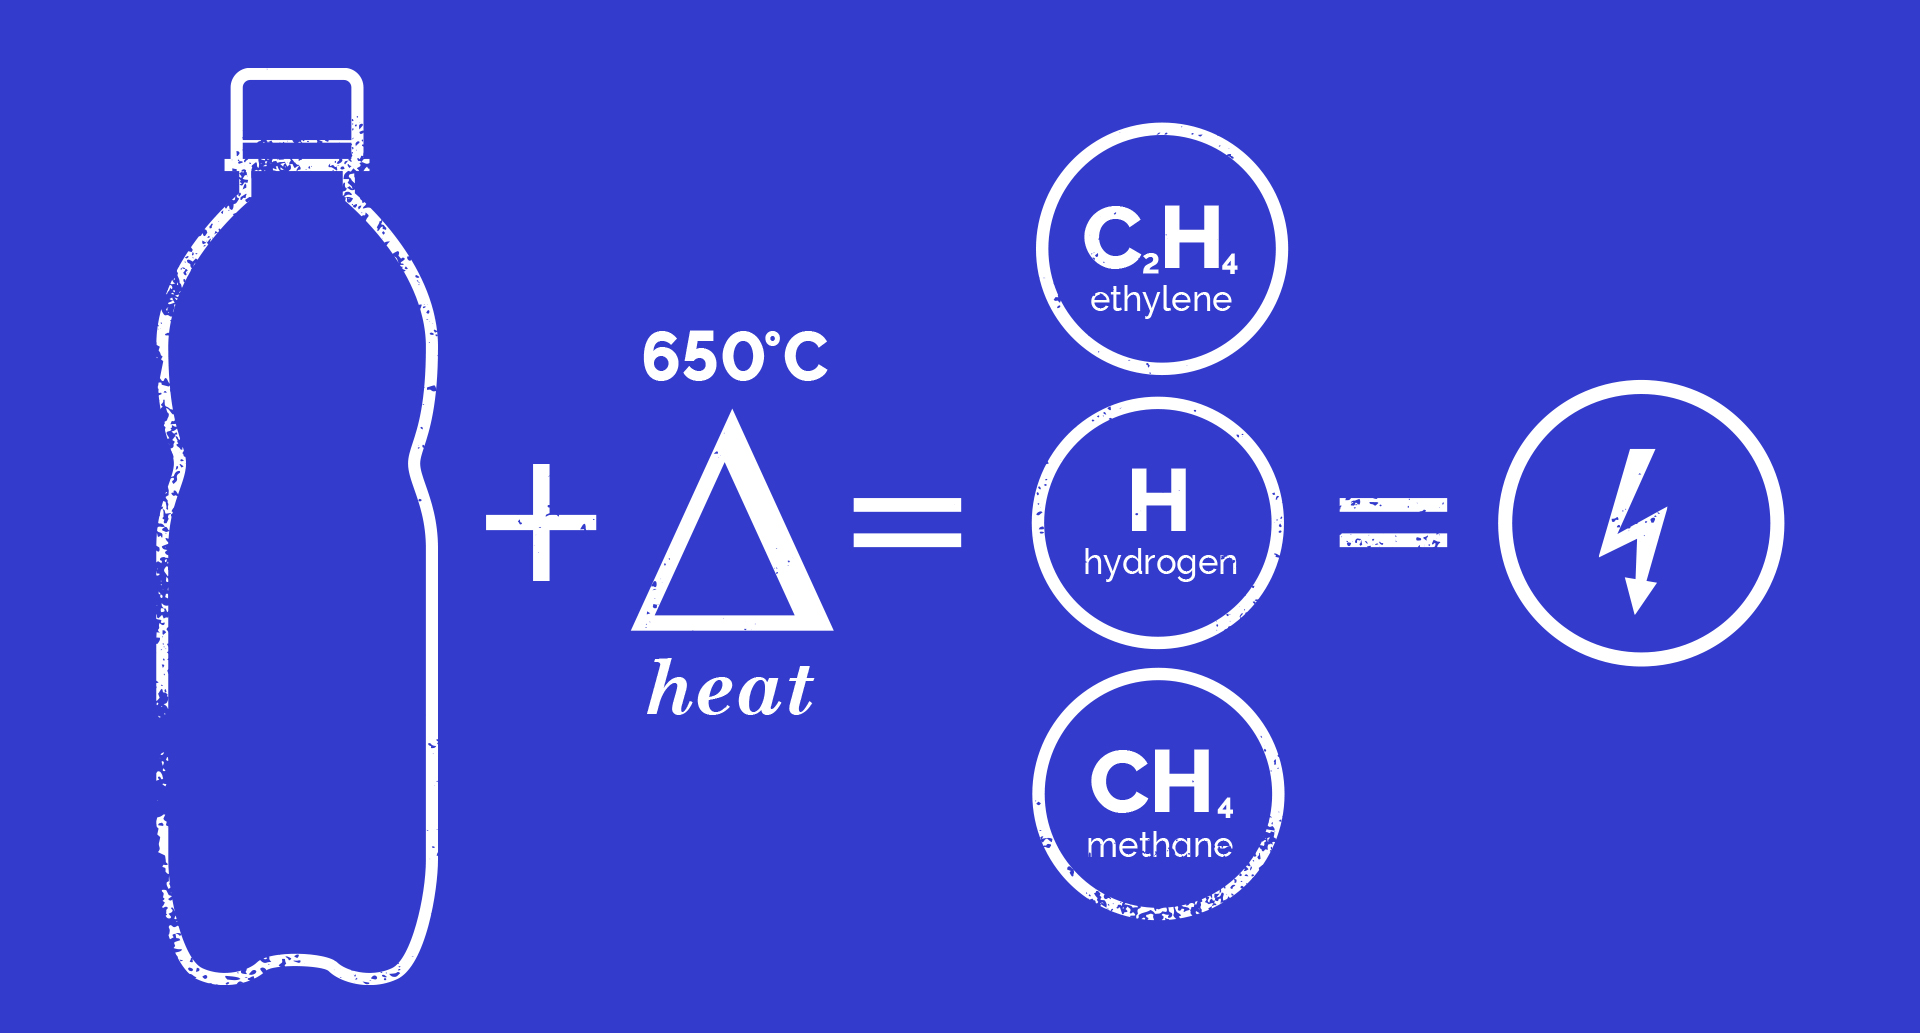 An equation showing a plastic bottle and cold plasma hydrolysis producing chemicals which are used to produce energy.